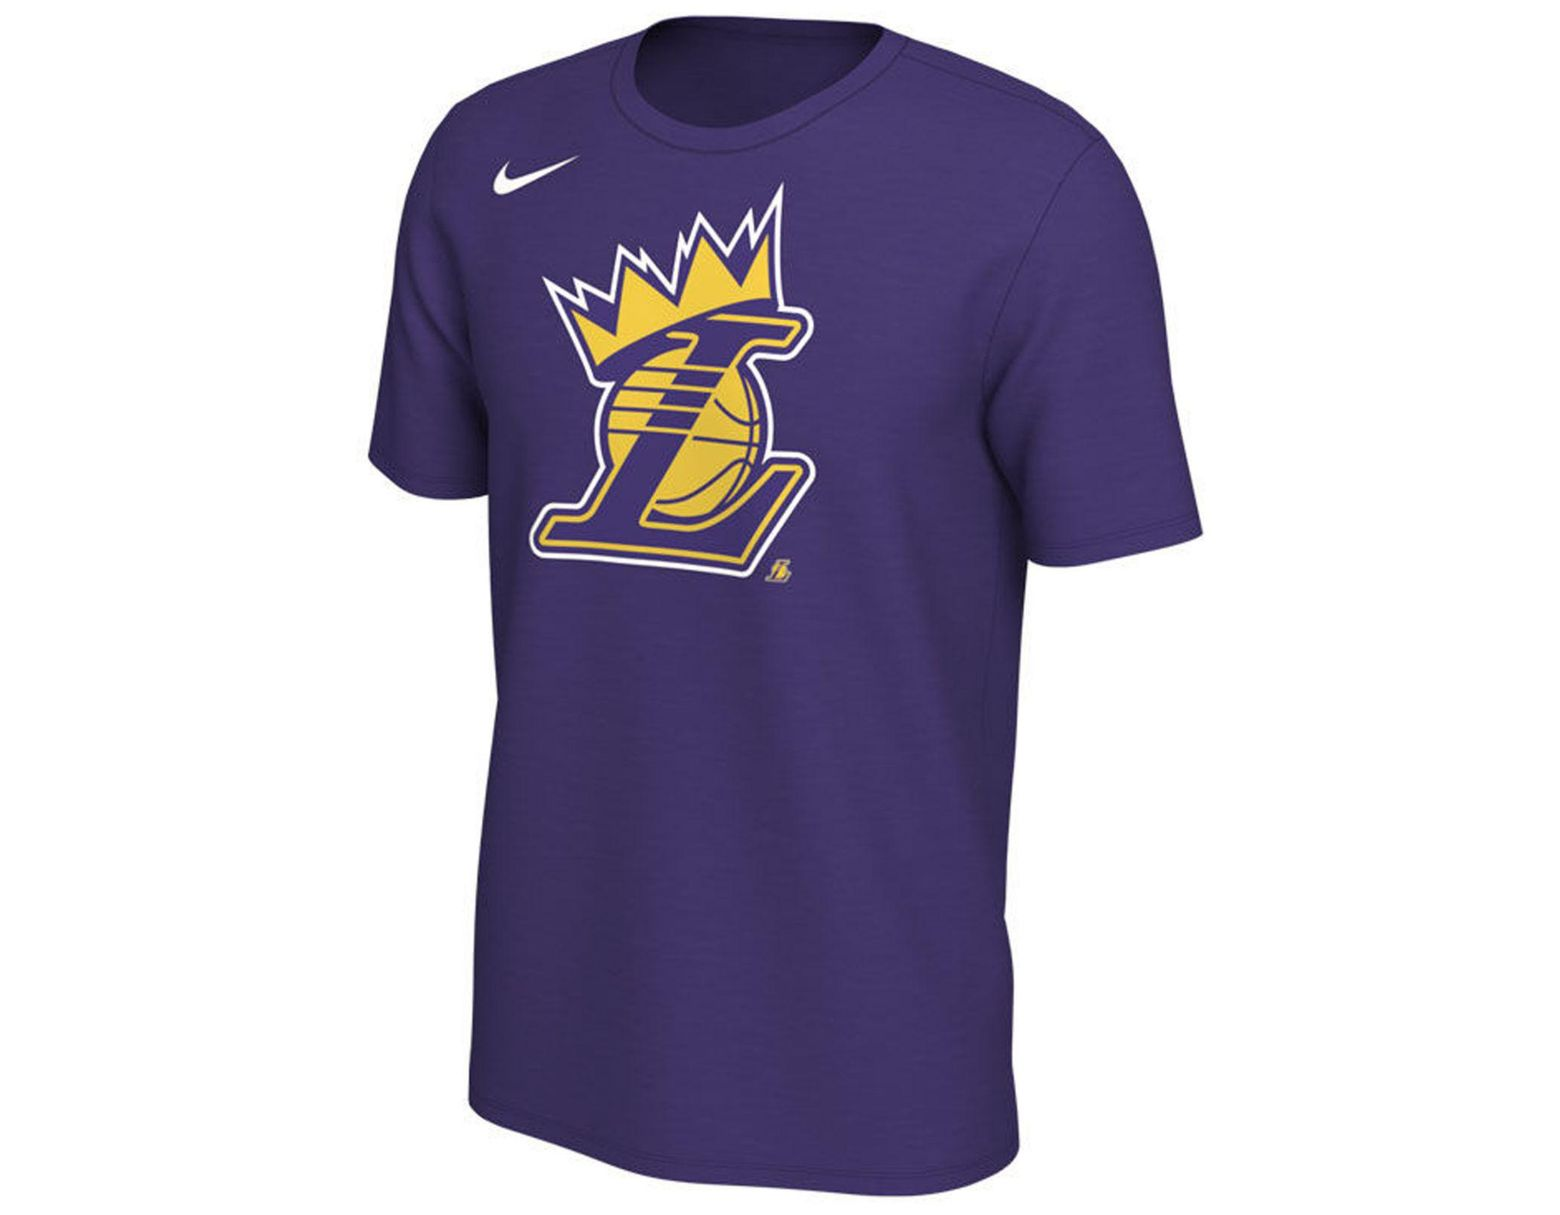 c8c78e5f Nike Lebron James Los Angeles Lakers King's Crown T-shirt in Purple for Men  - Save 50% - Lyst